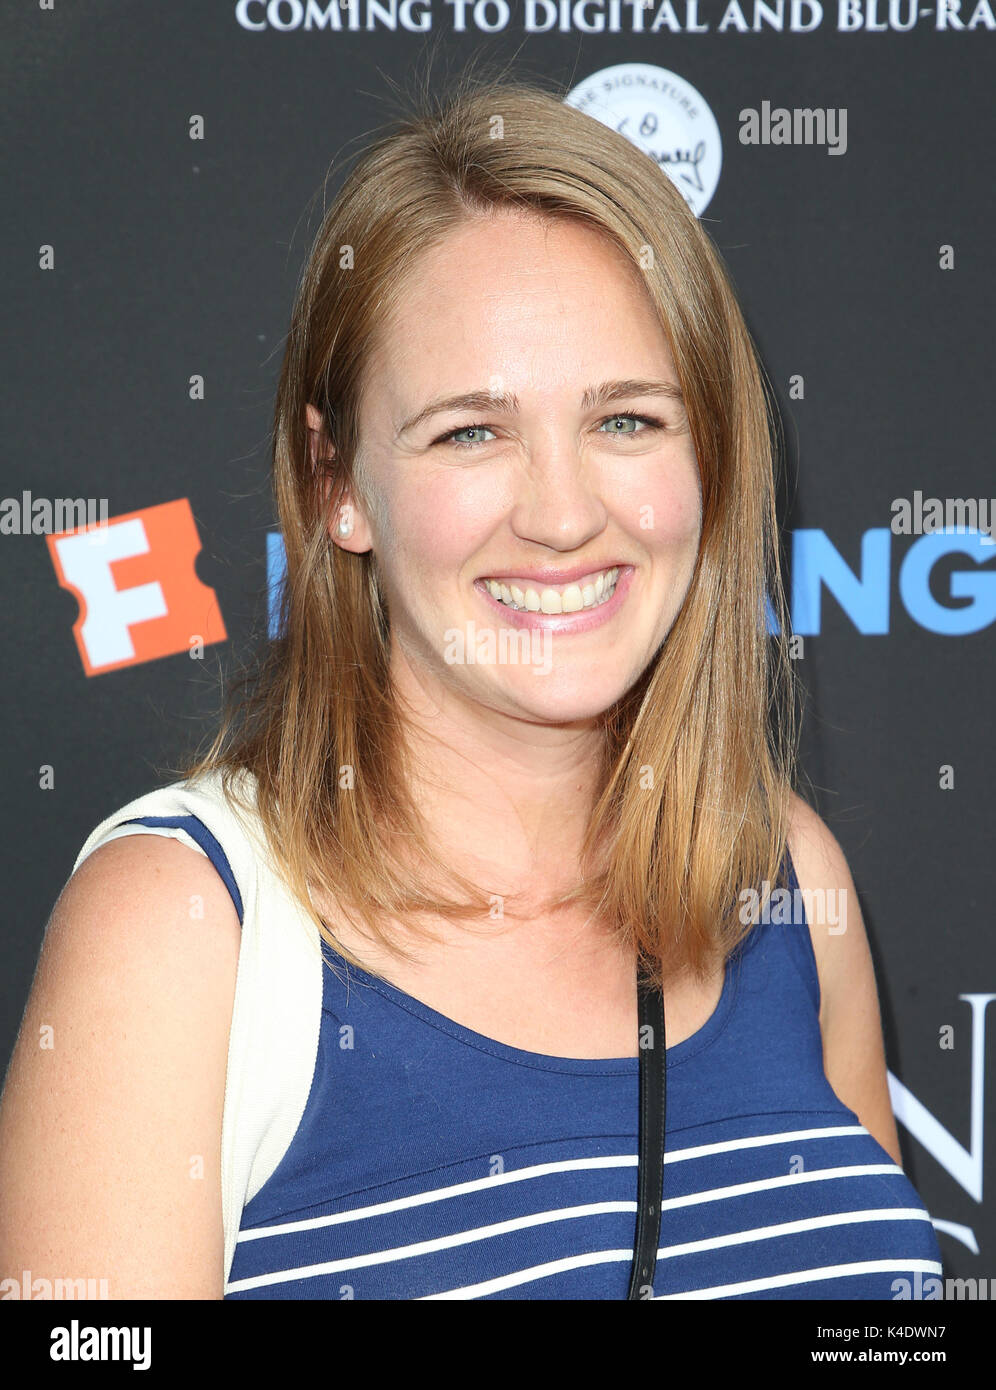 The lion king sing along screening featuring sarah thompson where los  angeles california united states when